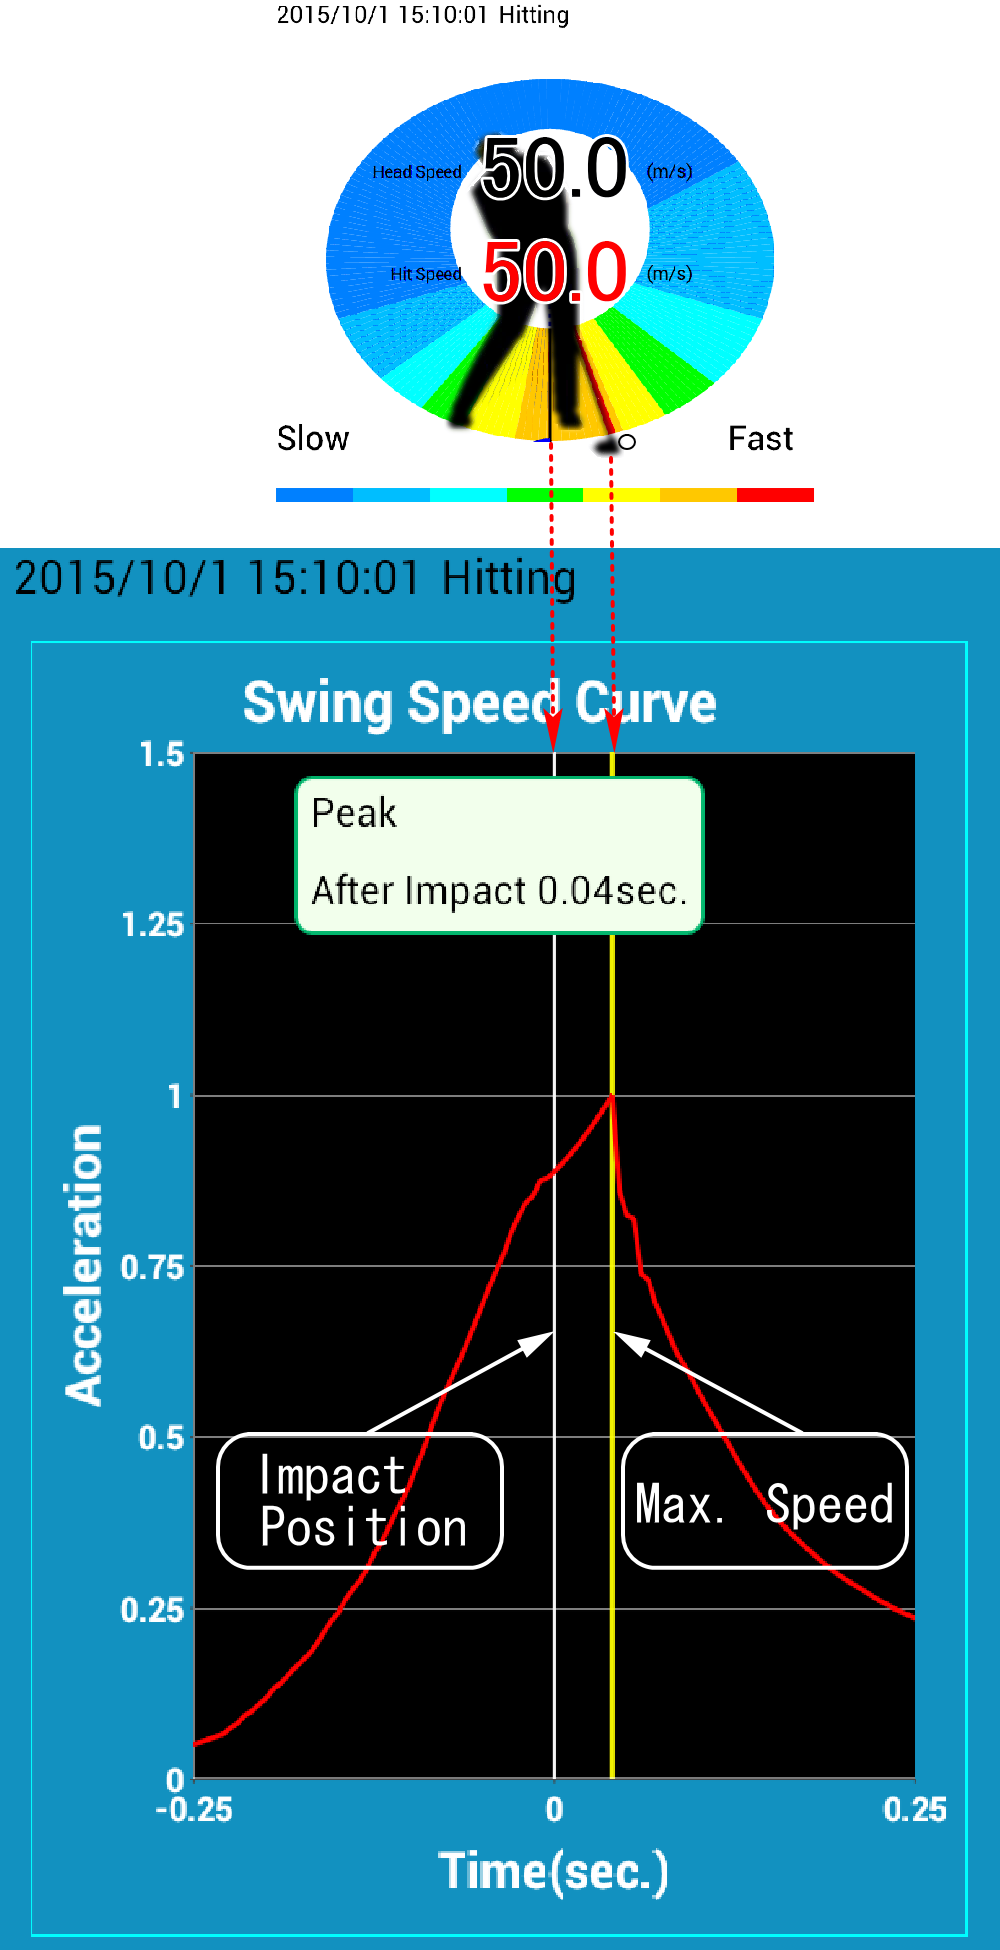 SmartShot Max. Speed After Impact